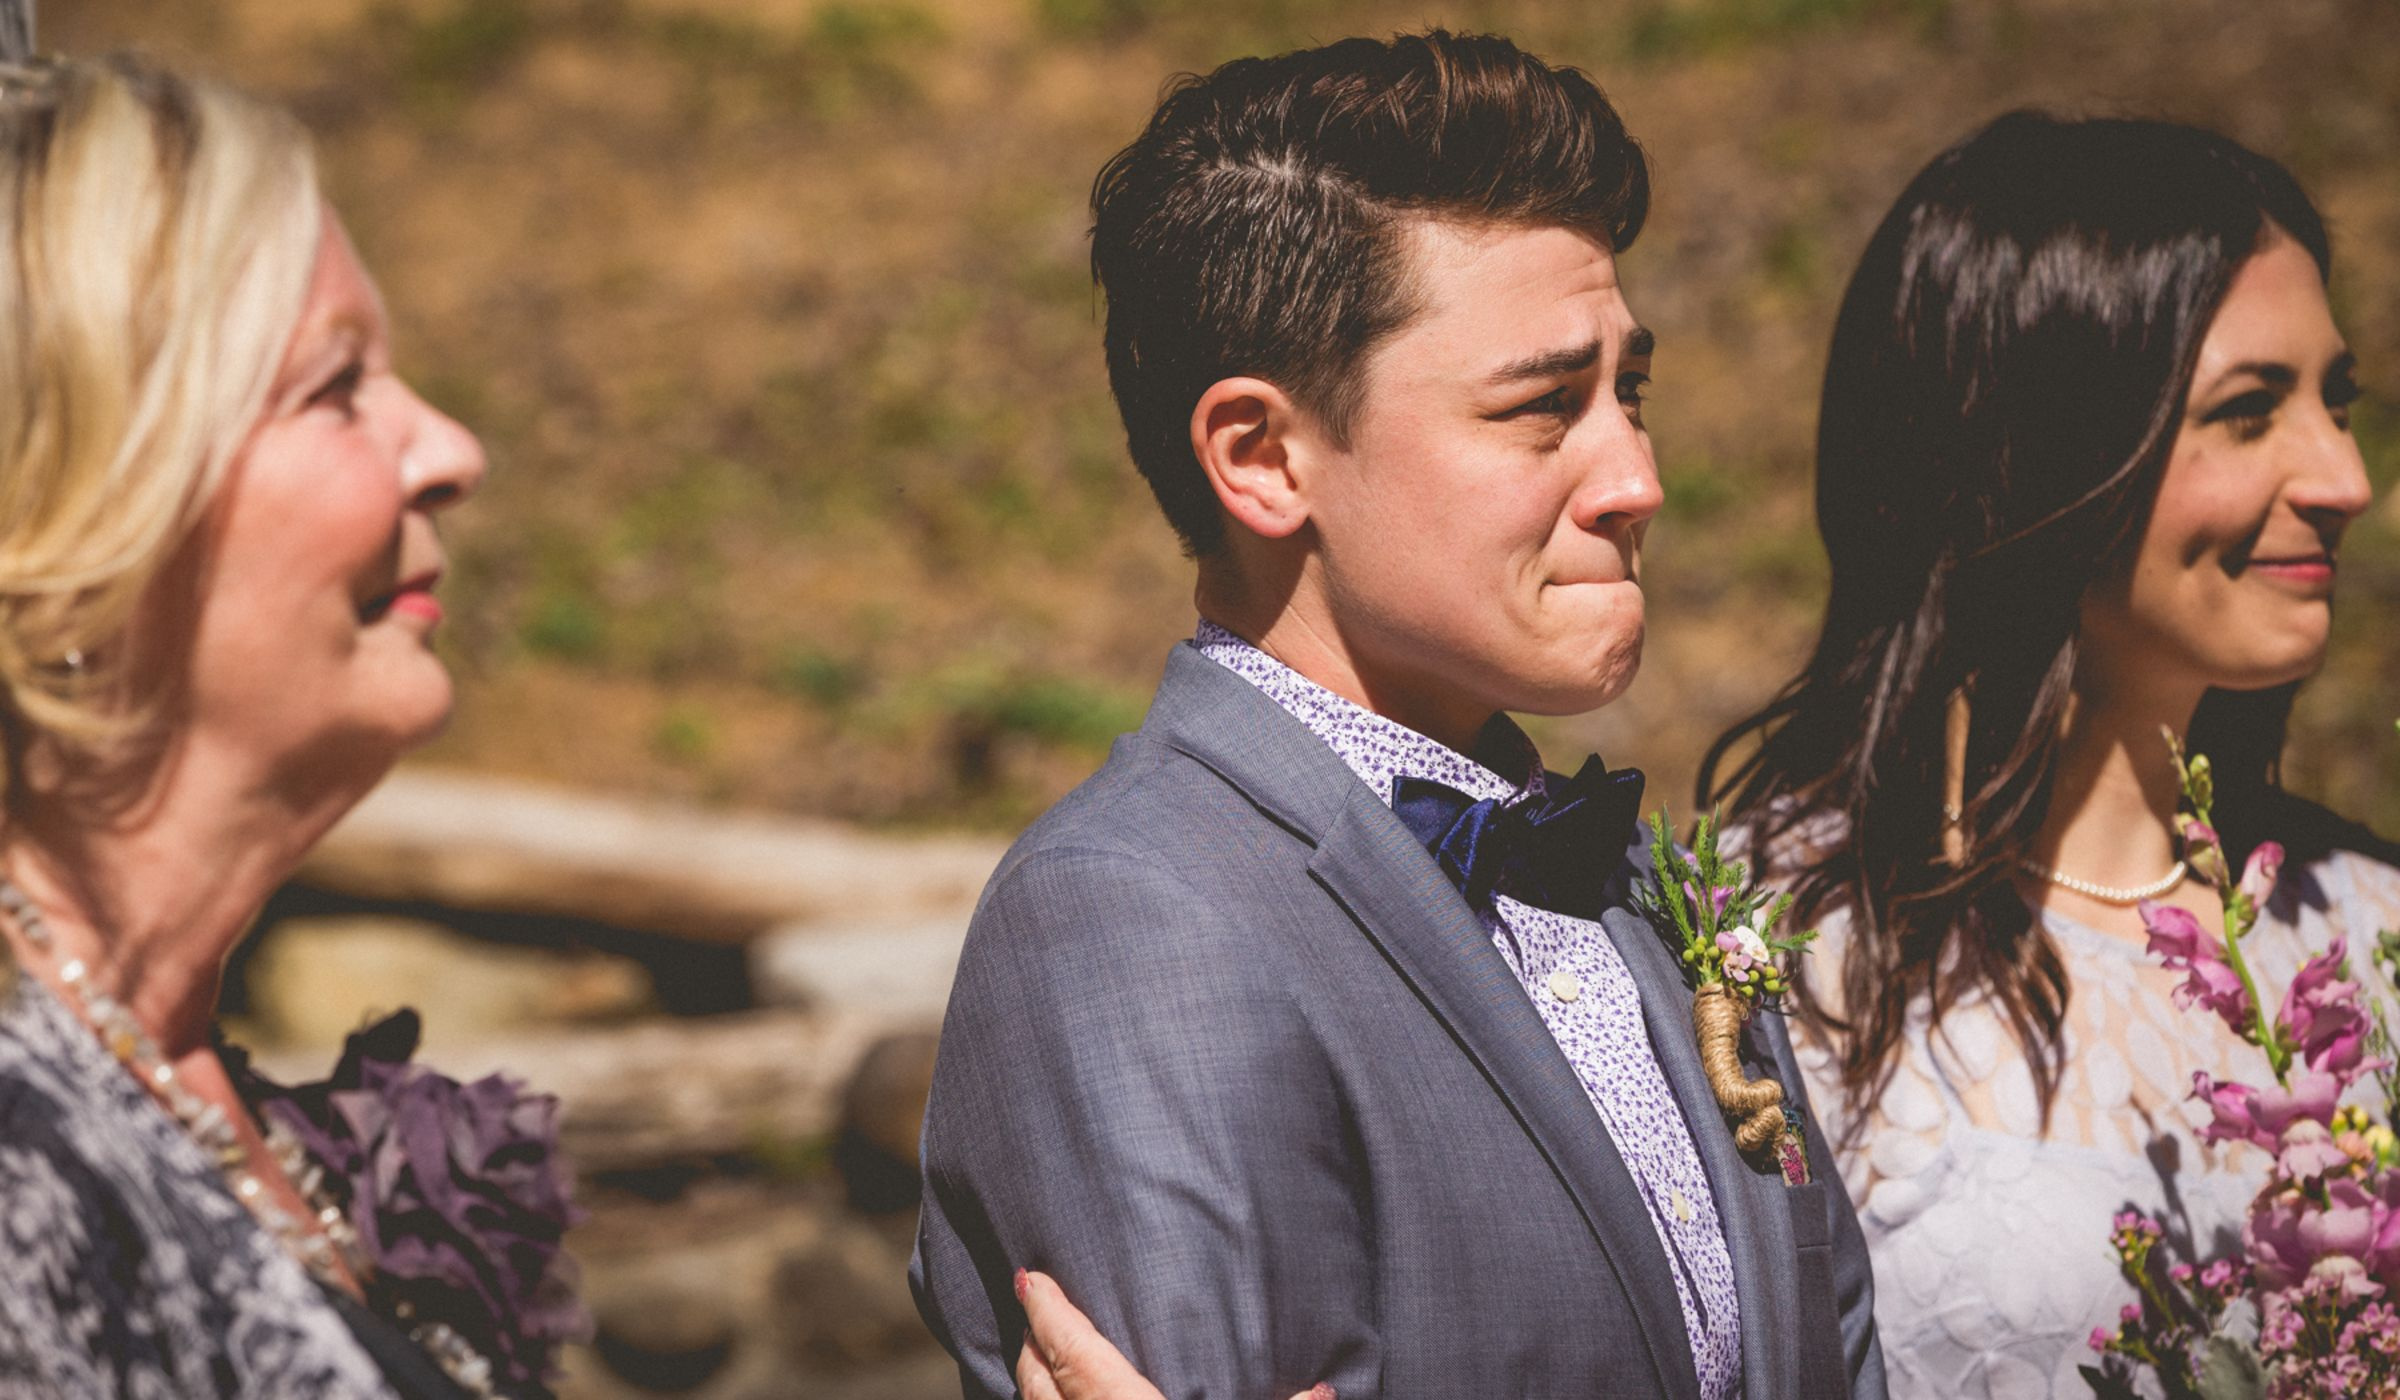 Processional Songs For Wedding Party: 20 Modern Processional Songs That Cue All The Tears